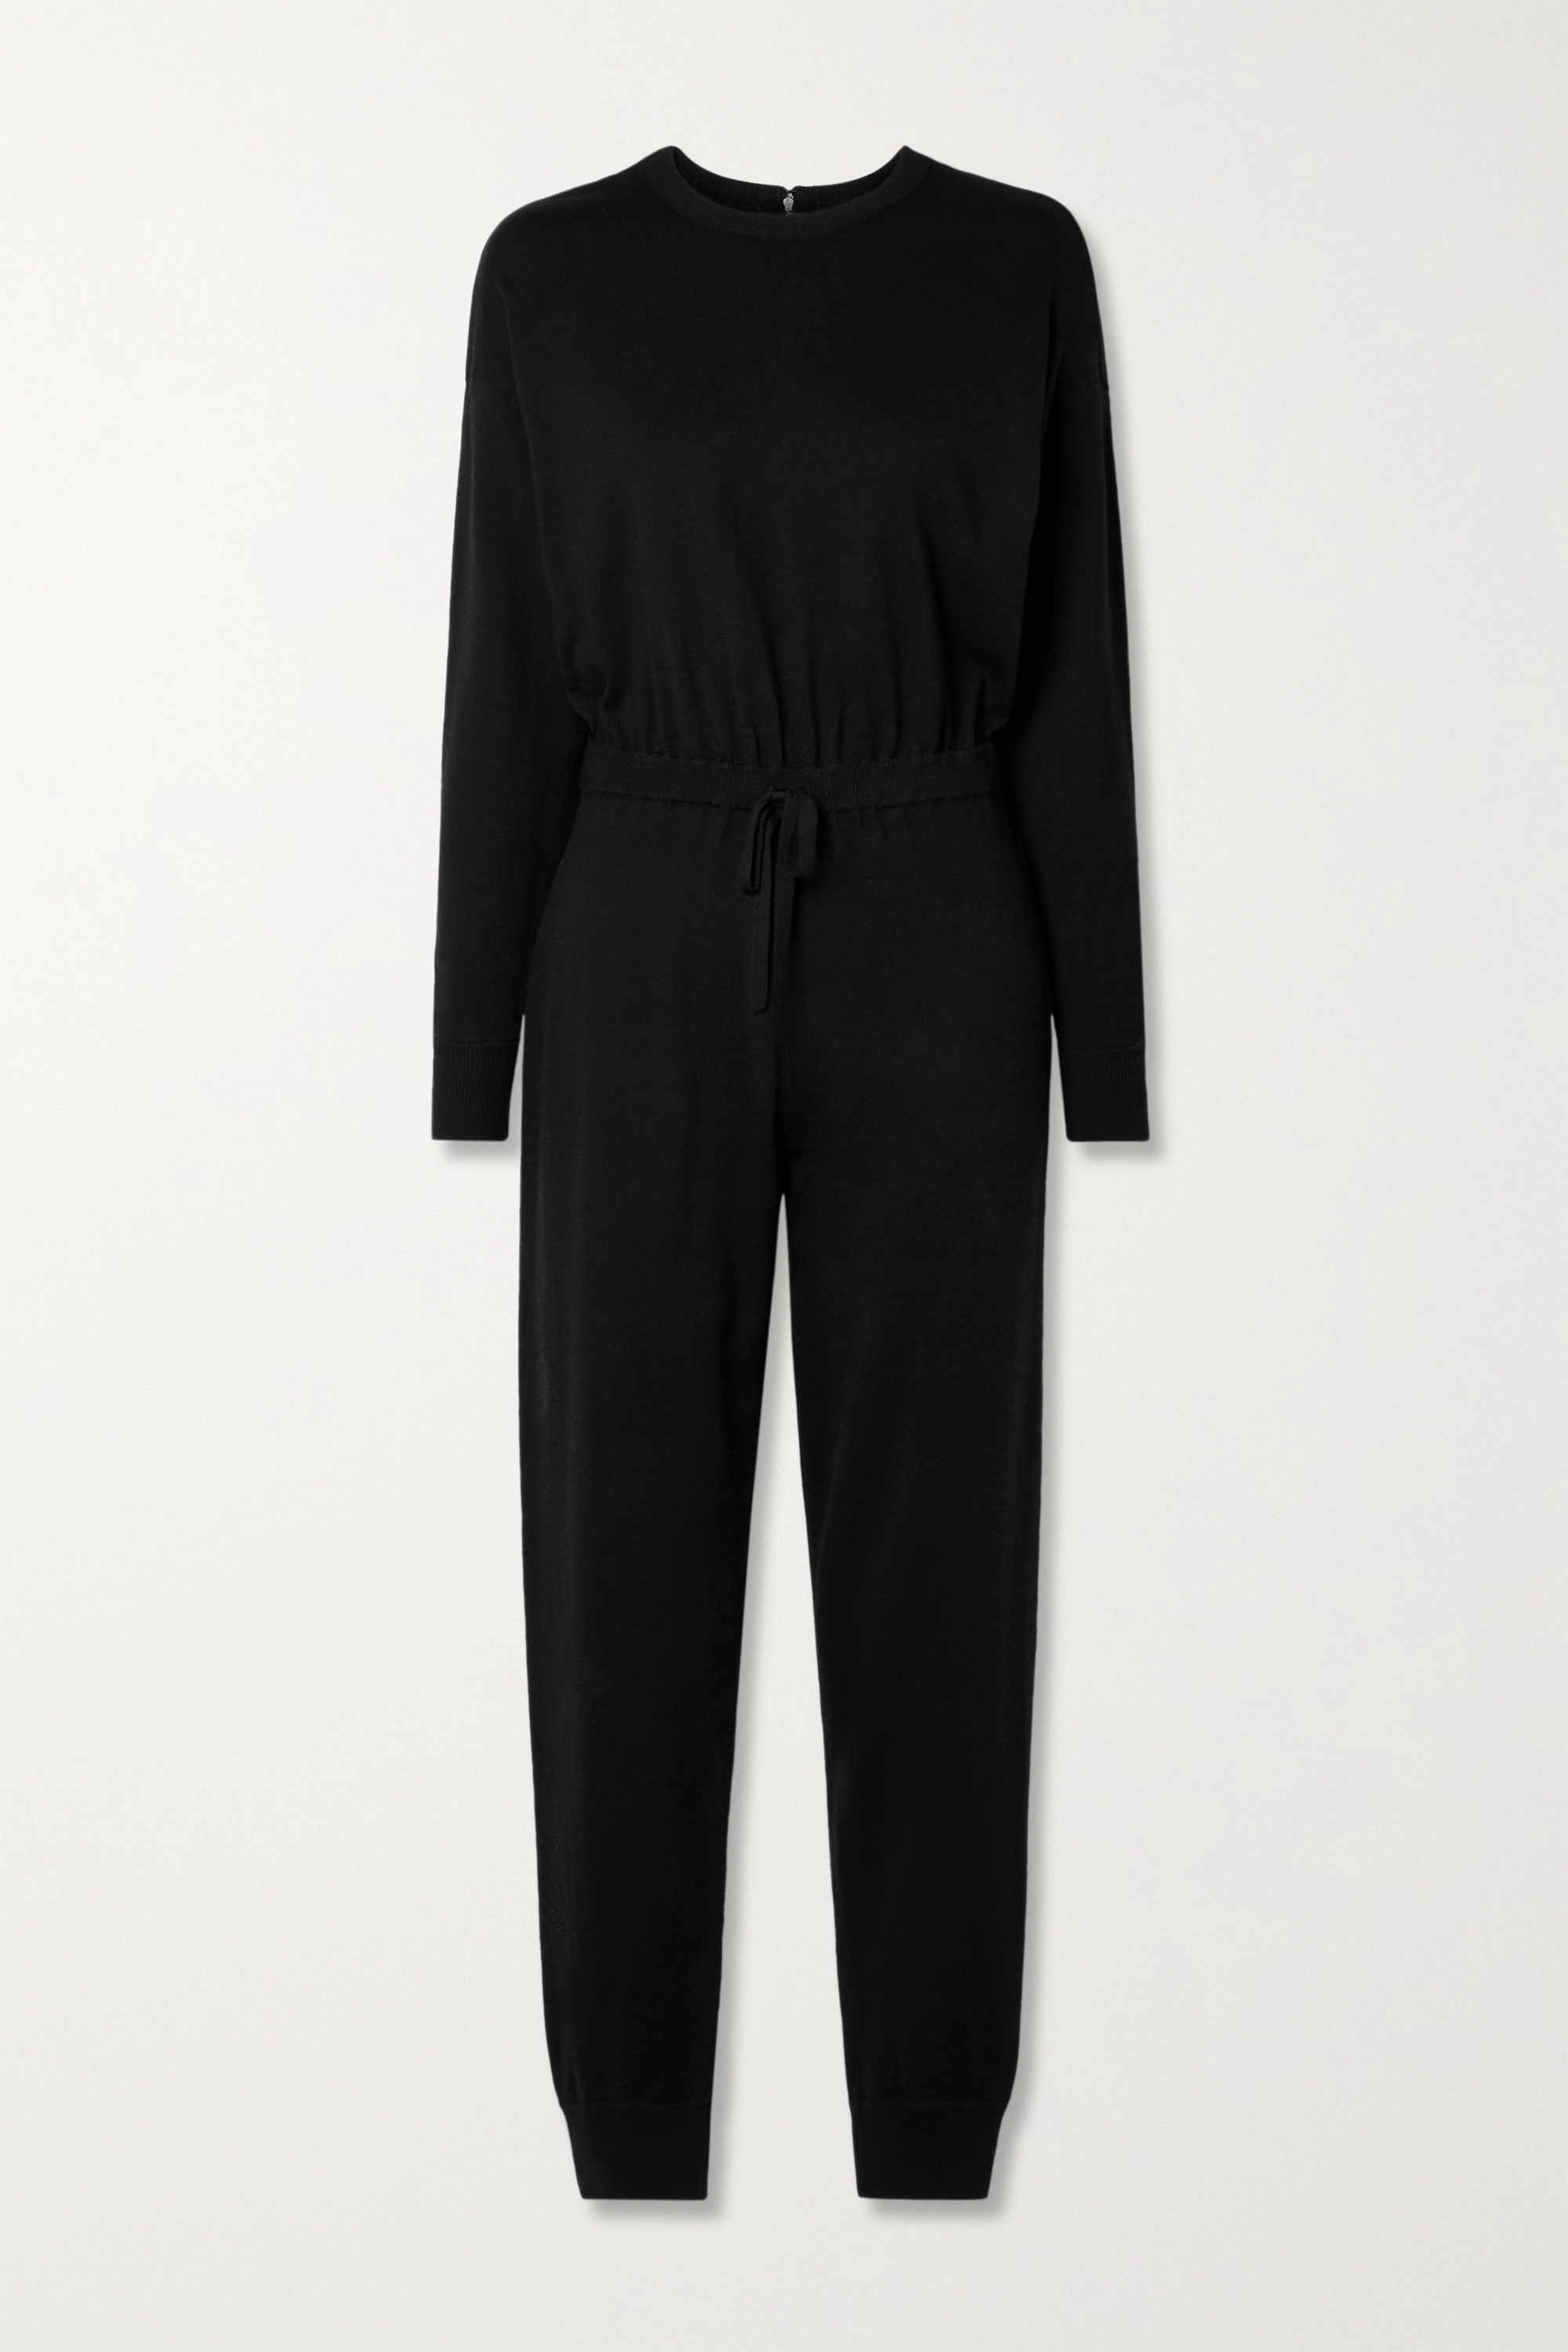 Alice And Olivia Nikita Wool-blend Jumpsuit In Black